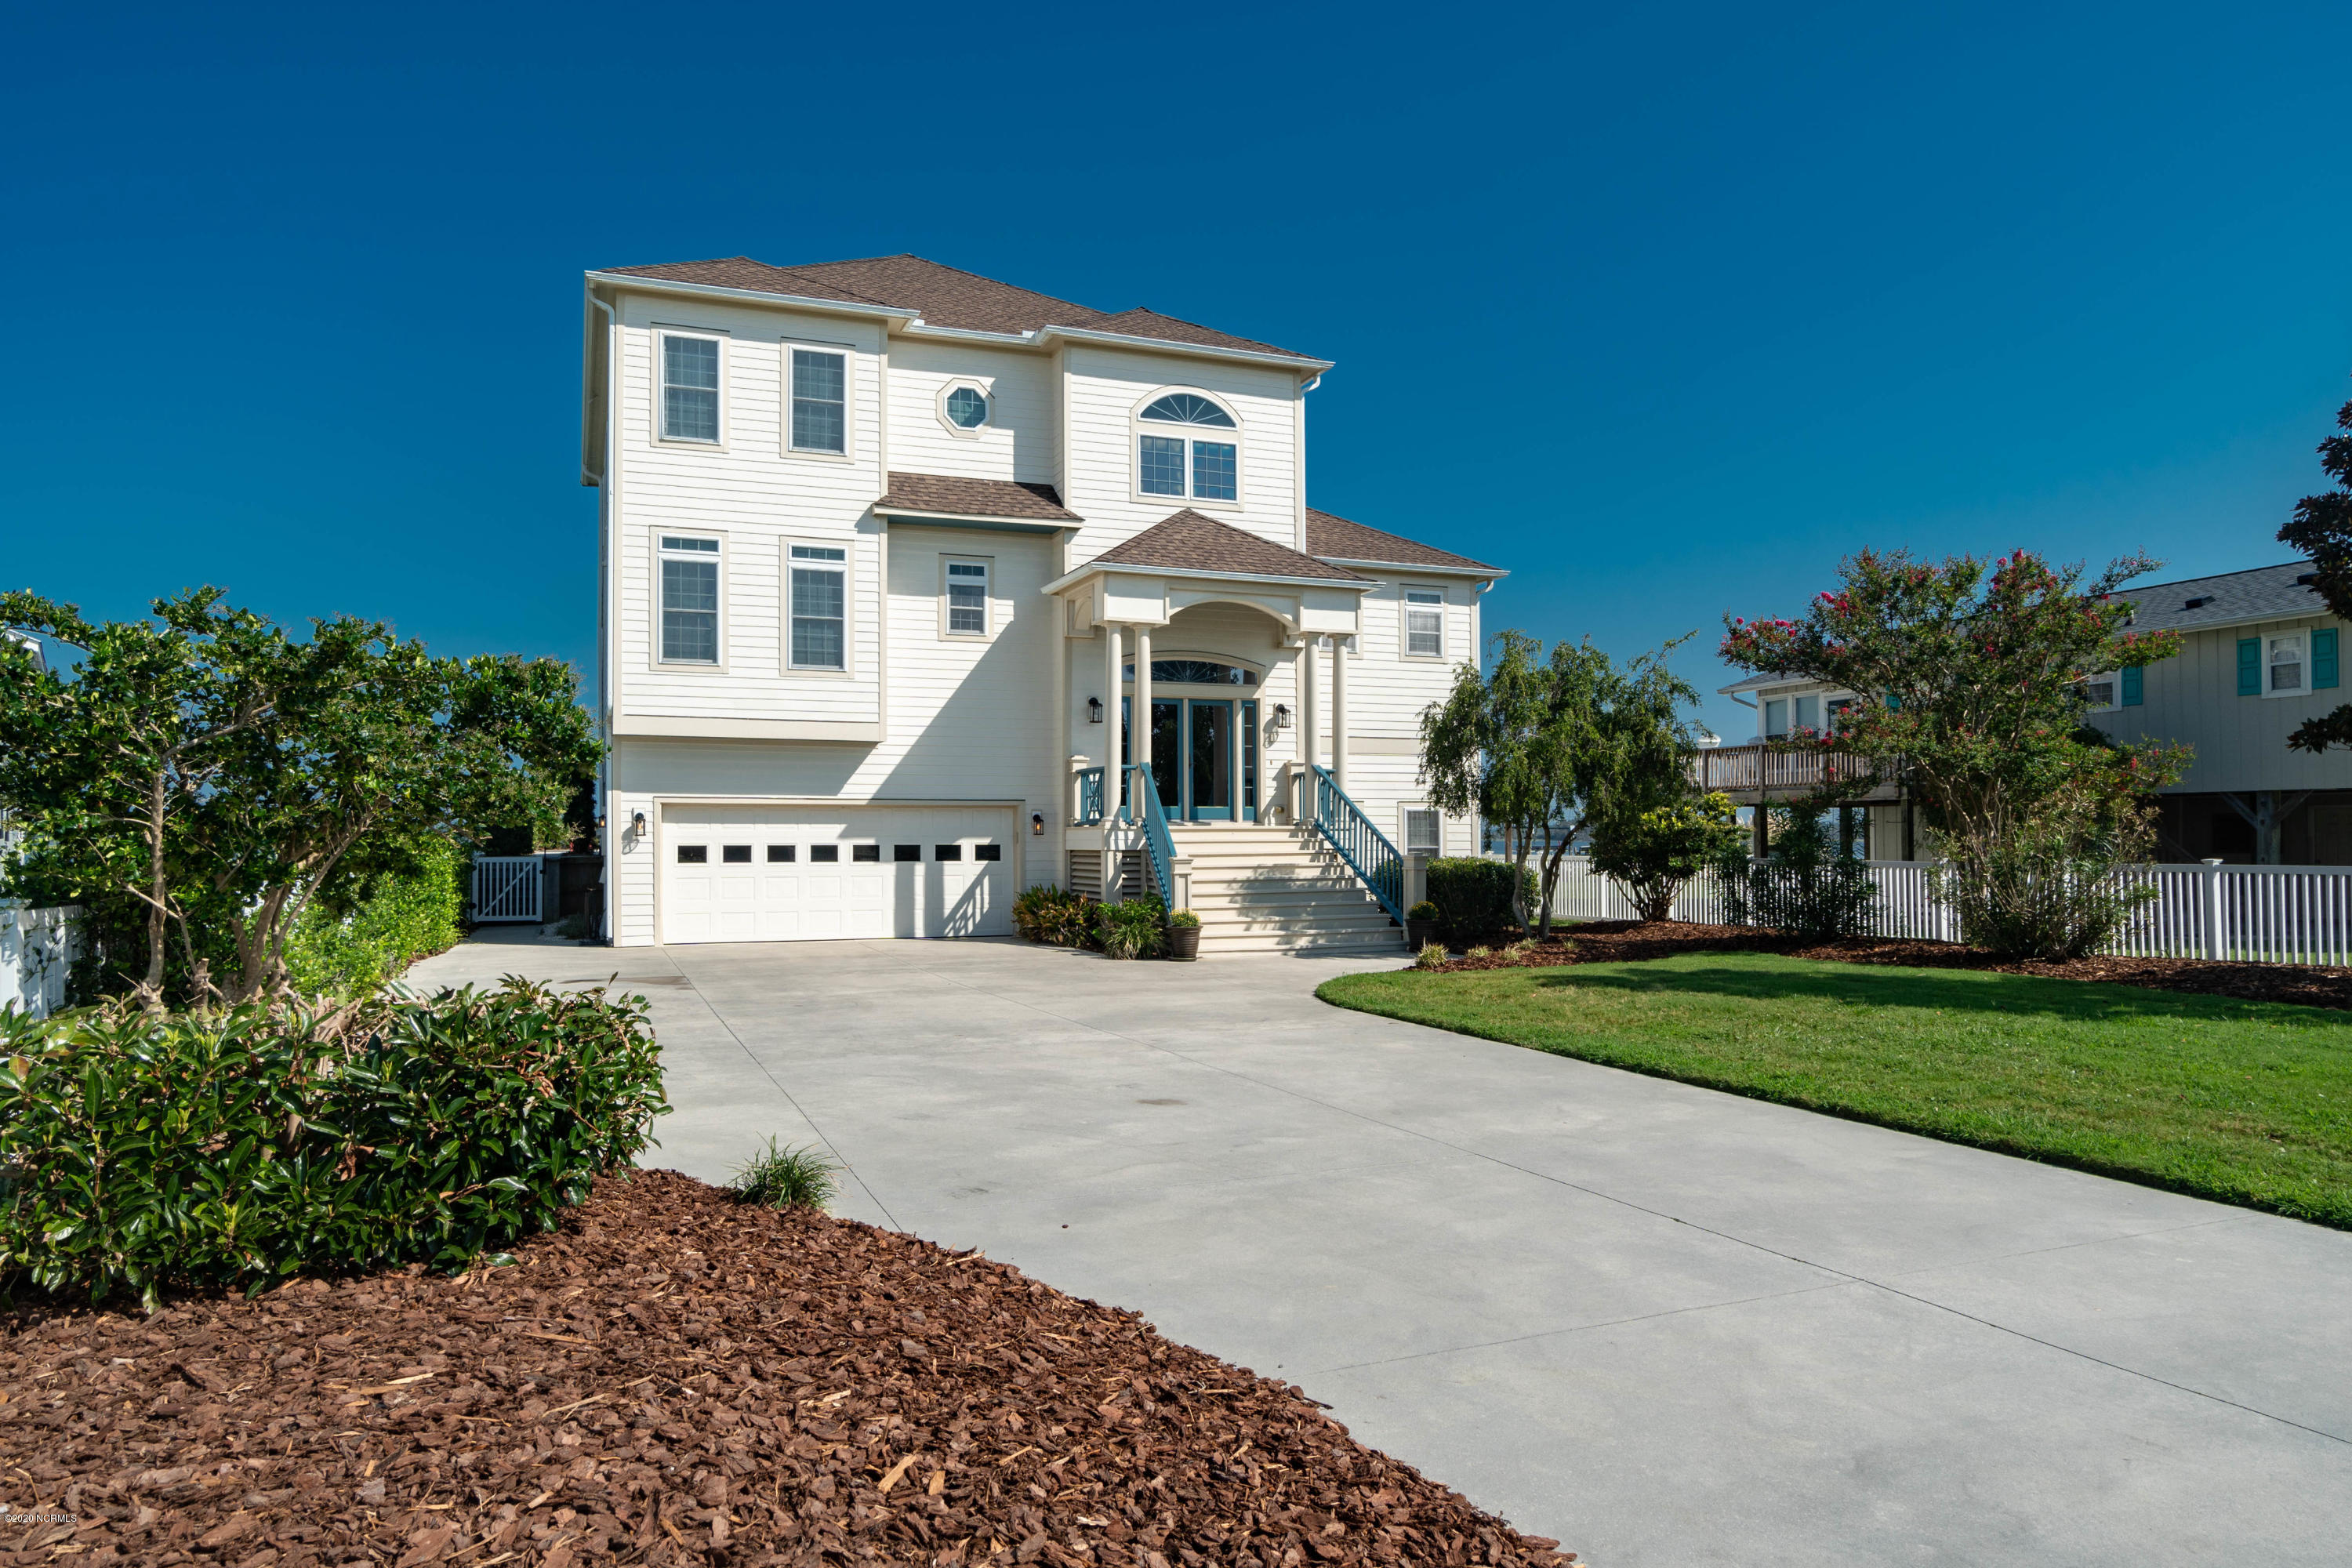 117 Dolphin Bay Estates, Cedar Point, North Carolina 28584, 3 Bedrooms Bedrooms, ,2 BathroomsBathrooms,Residential,For Sale,Dolphin Bay,100235238